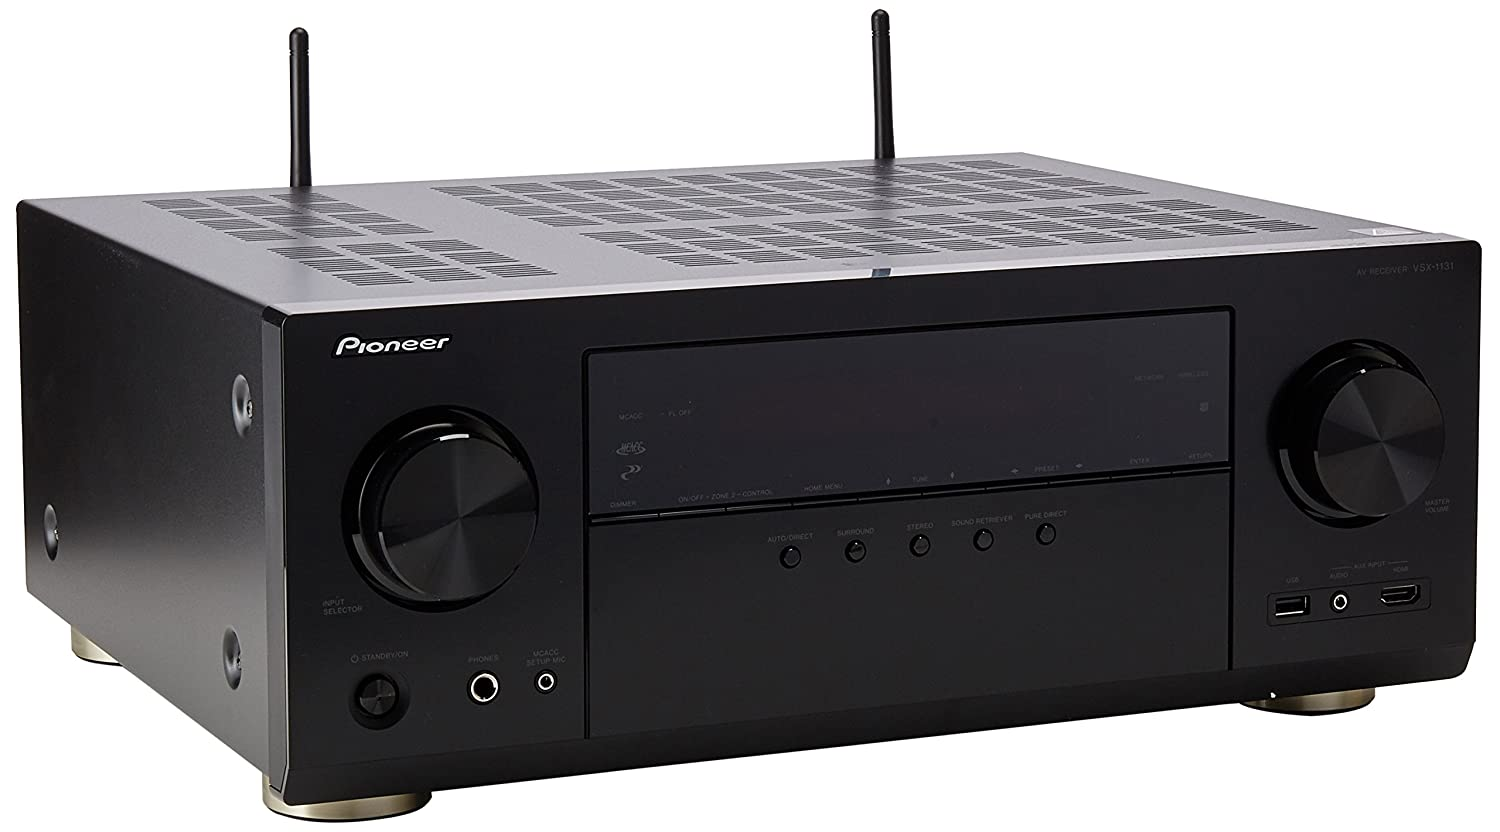 Amazon.com: Pioneer VSX-1131 7.2-Channel AV Receiver with MCACC built-in  Bluetooth and Wi-Fi: Electronics